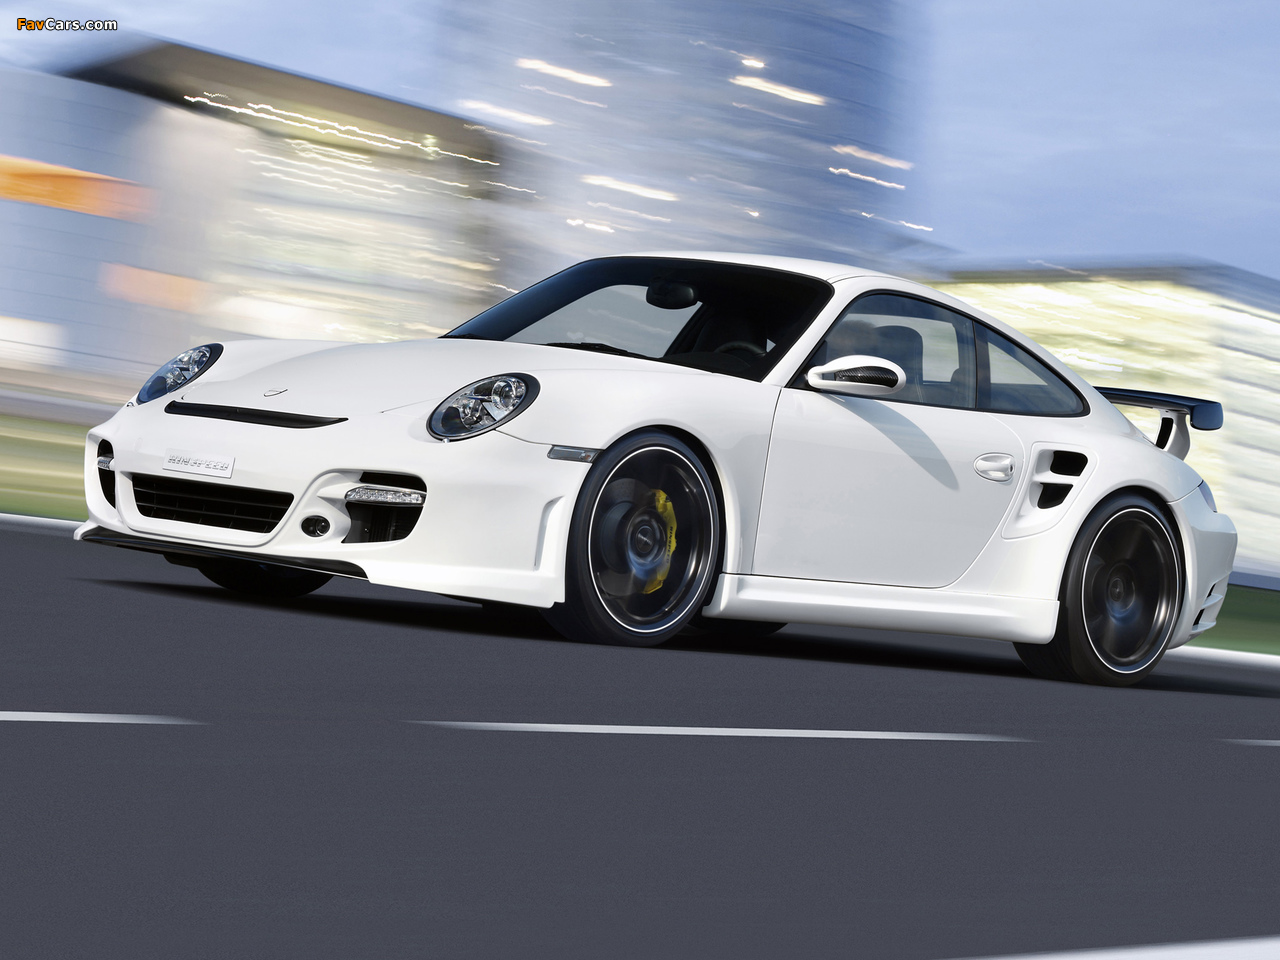 Rinspeed LeMans based on Porsche 911 Turbo (997) 2007 pictures (1280 x 960)